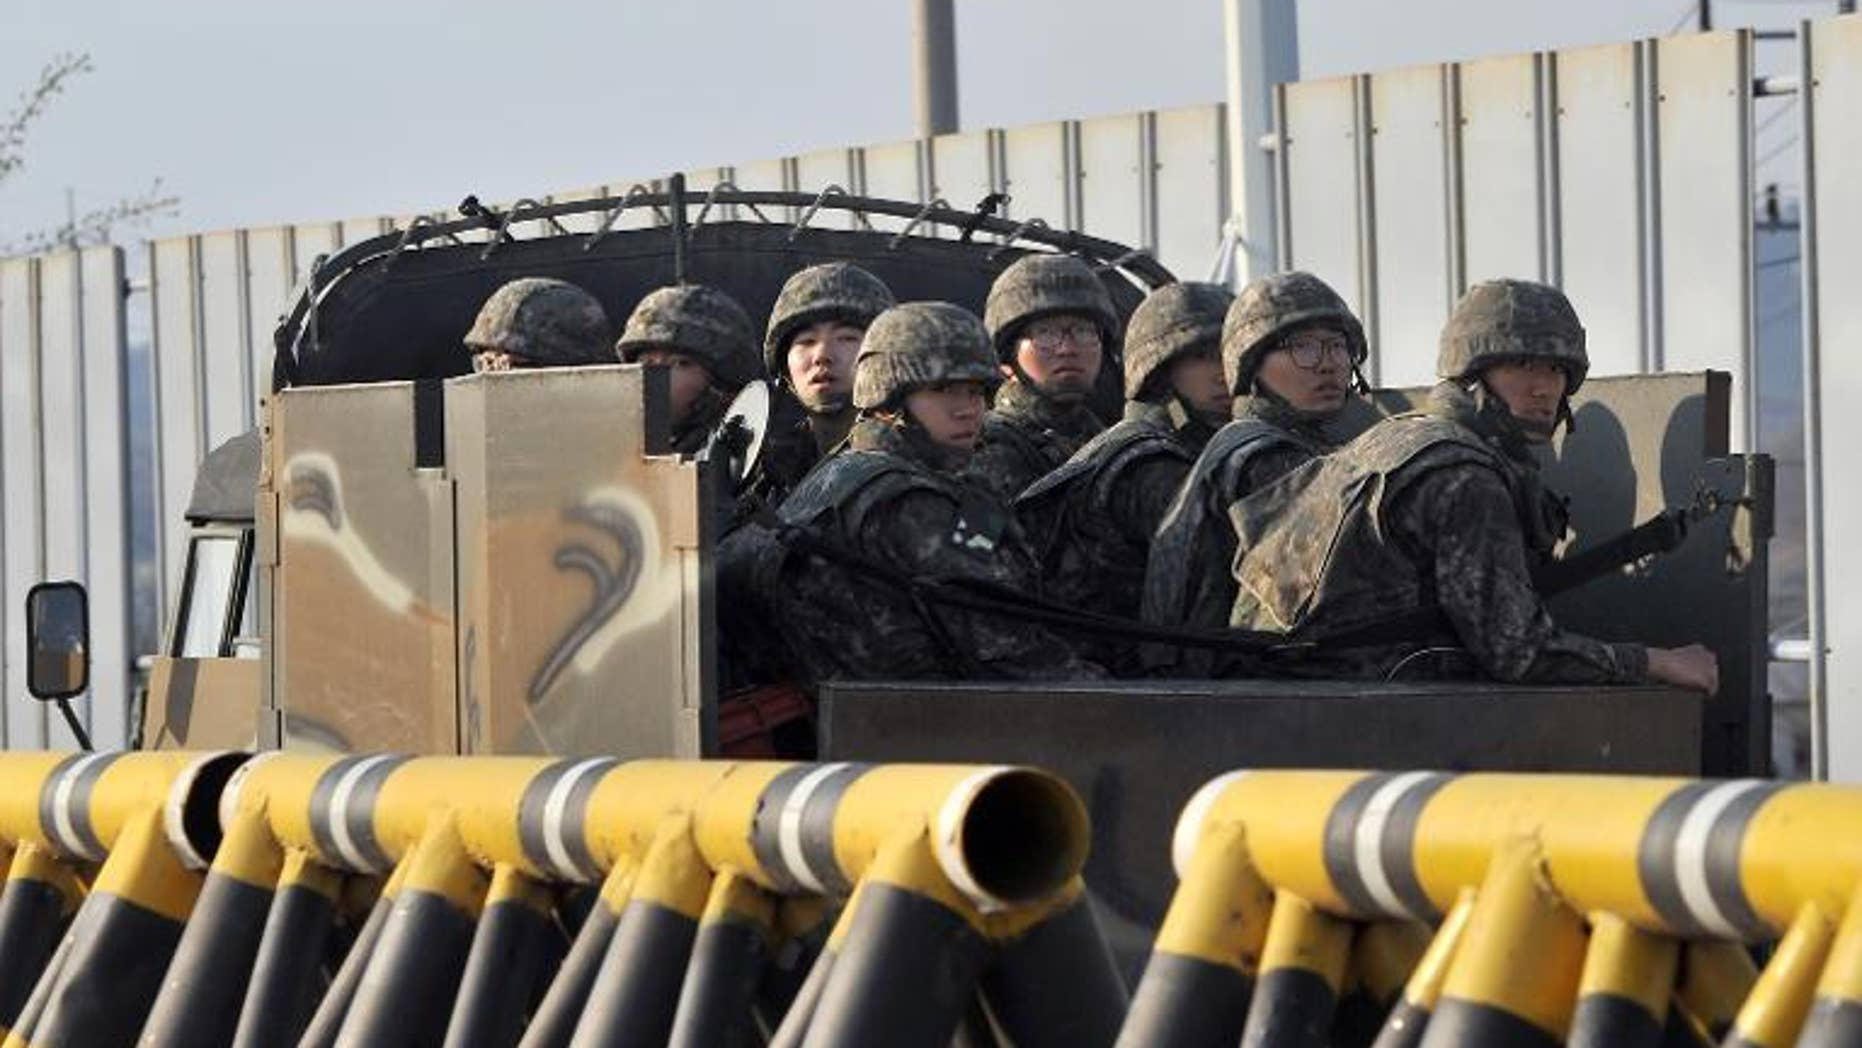 South Korean soldiers ride a military vehicle on the road leading to North Korea in the border city of Paju on April 26, 2013.